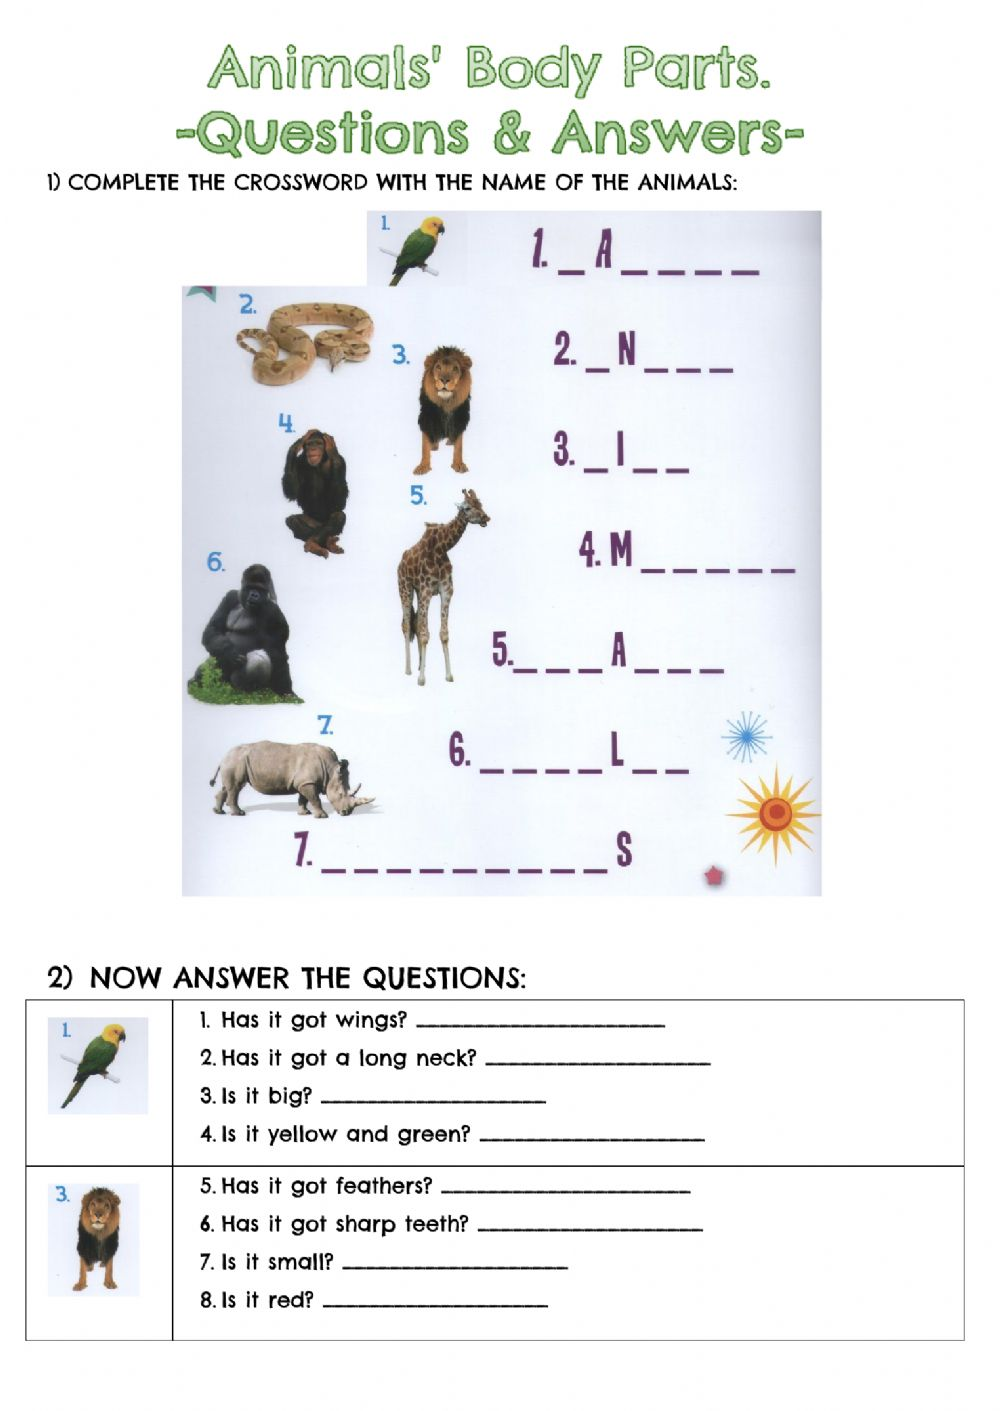 medium resolution of Animals body parts online exercise for second grade / third grade / kids 2  / beginners